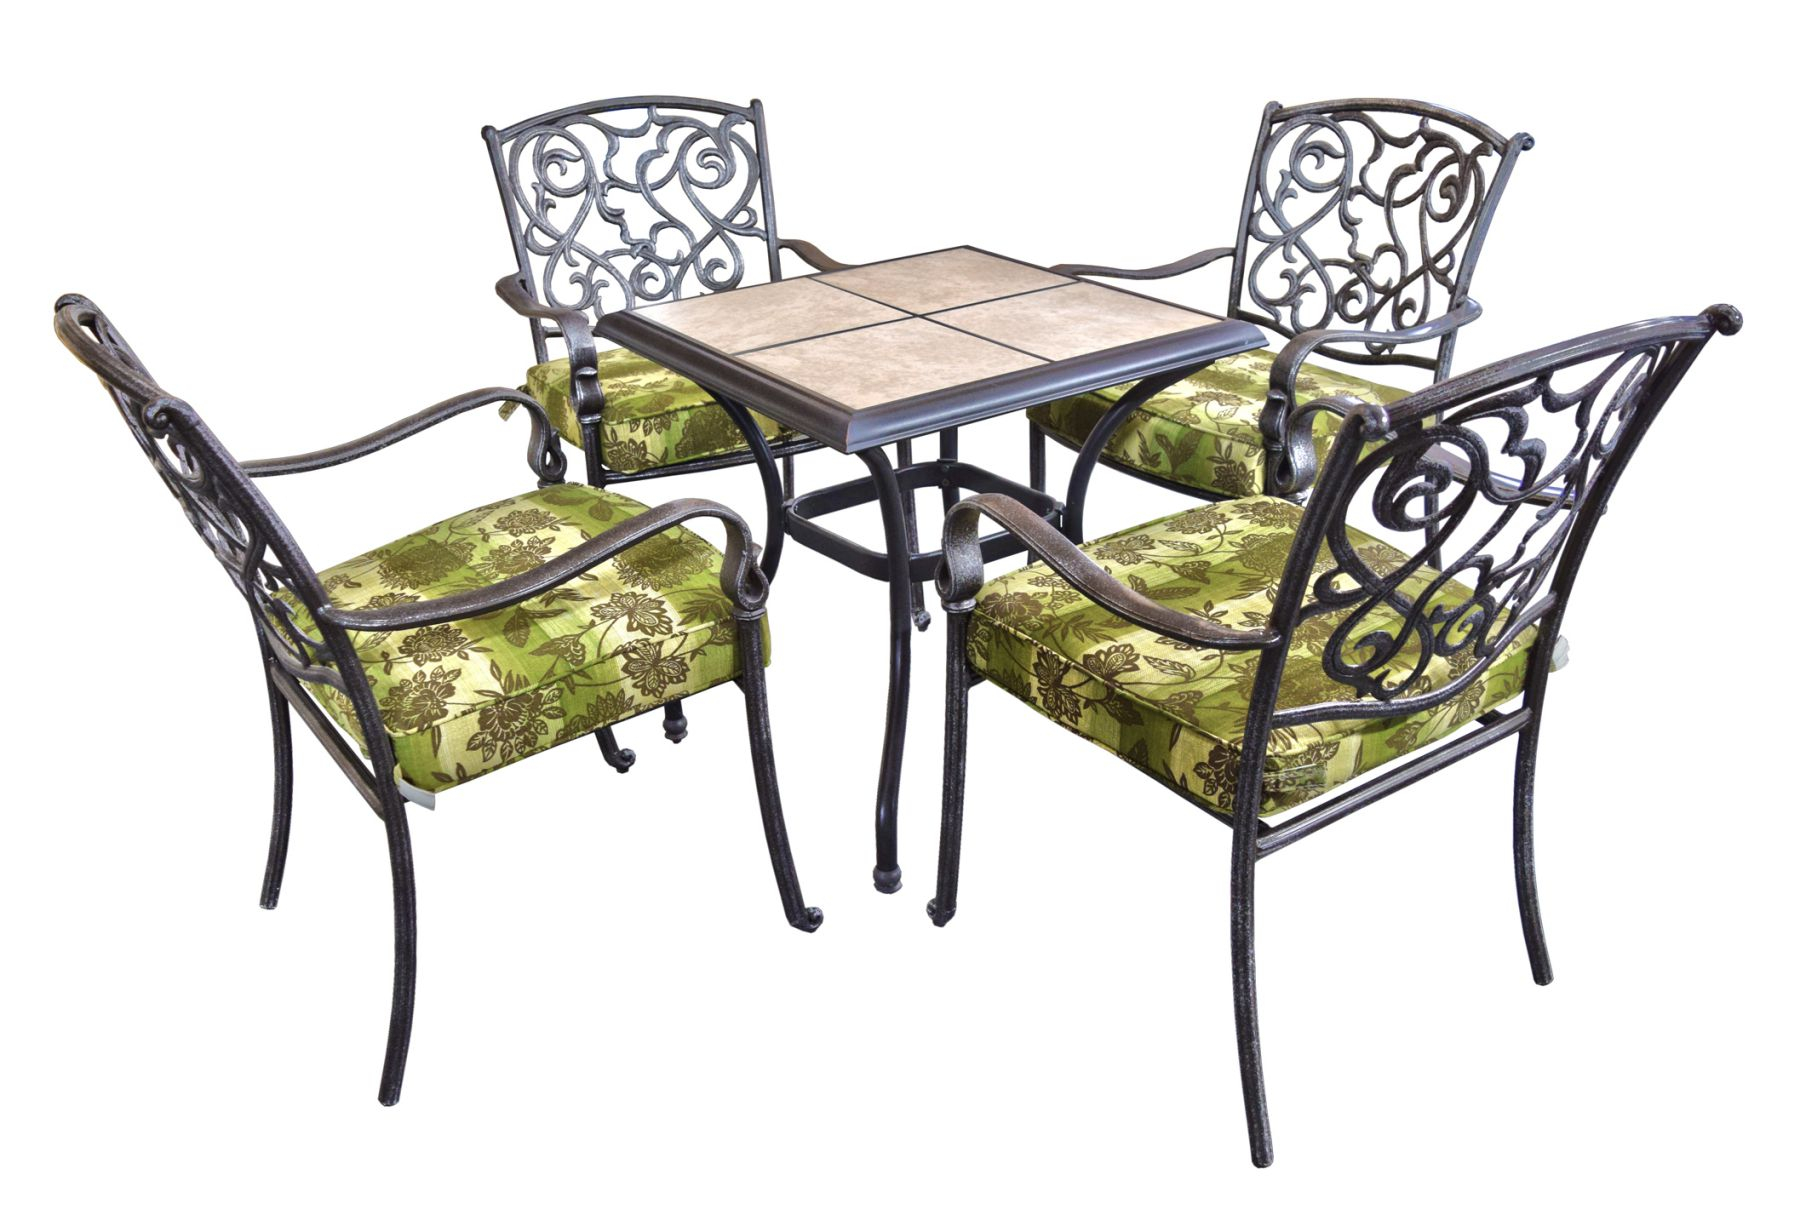 Roopnarine Patio Furniture Trinidad intended for dimensions 1800 X 1220